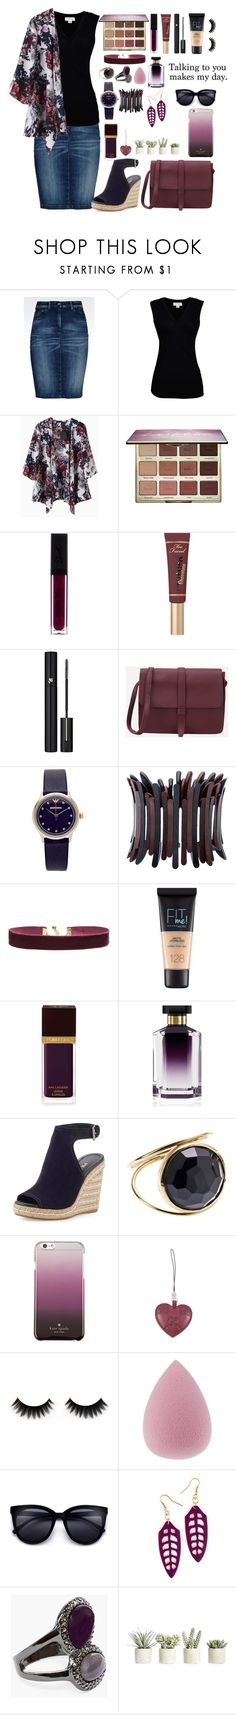 """""""Talking To You Makes My Day"""" by missbeth1897 ❤ liked on Polyvore featuring Armani Jeans, Velvet by Graham & Spencer, tarte, Too Faced Cosmetics, Lancôme, Emporio Armani, Alexa Starr, Vanessa Mooney, Maybelline and Tom Ford"""